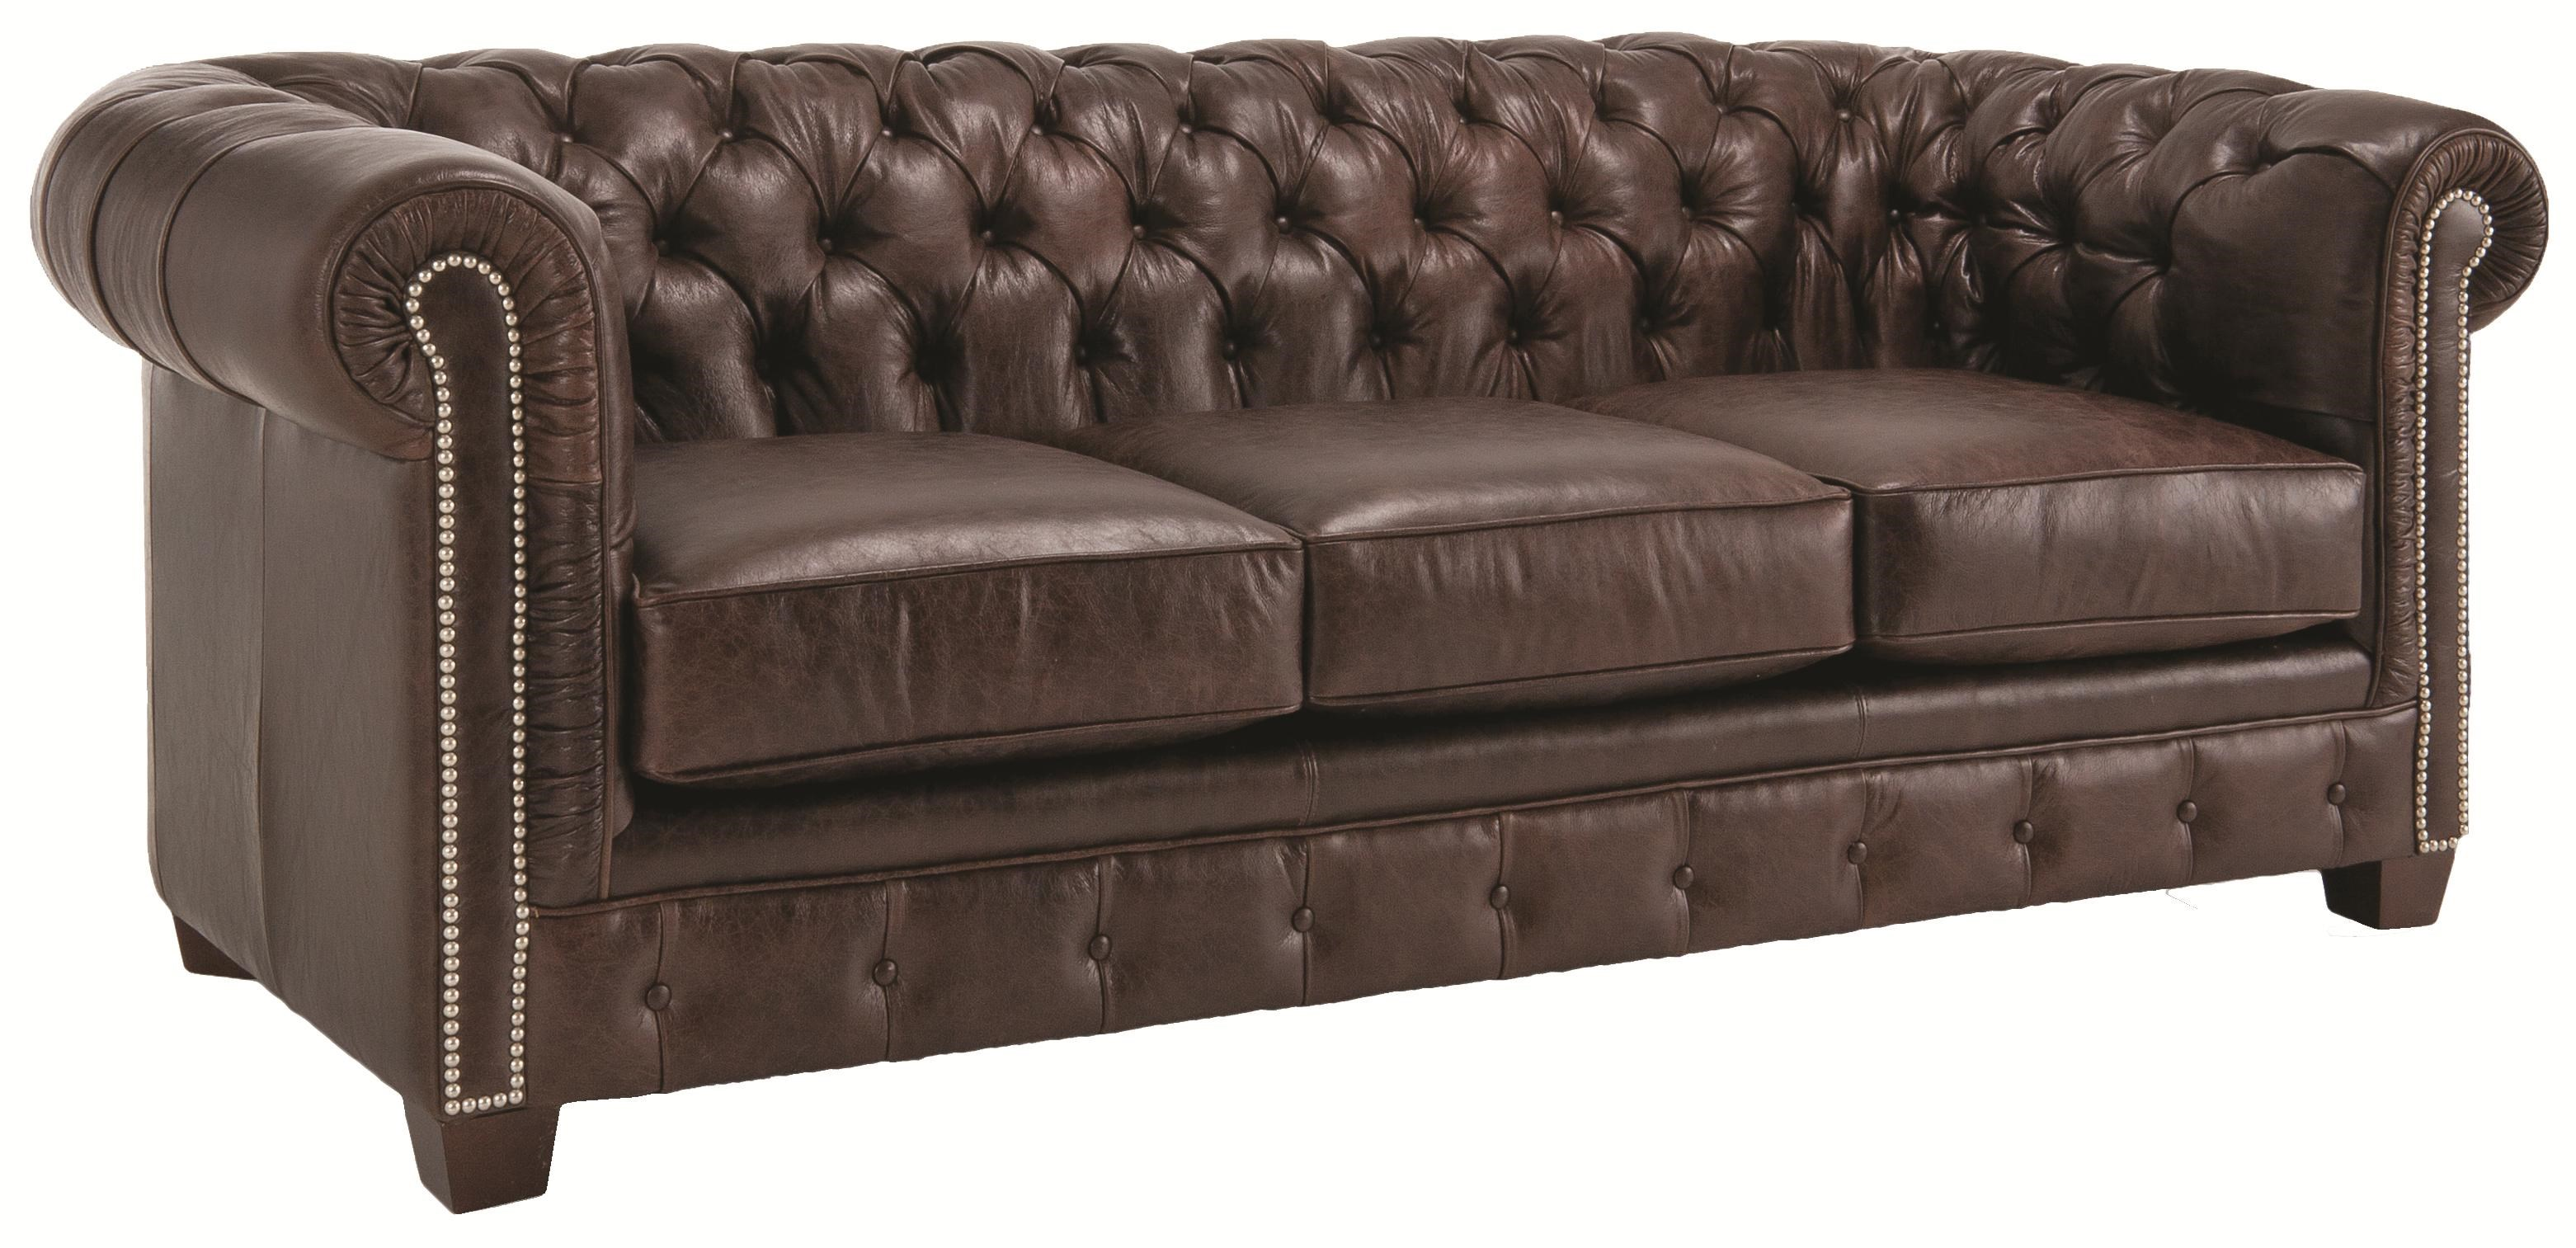 Decor Rest 3230 Traditional Styled Tuxedo Sofa With Deep Tufted Seat Back  And Rolled Arms   Sheelyu0027s Furniture U0026 Appliance   Sofas